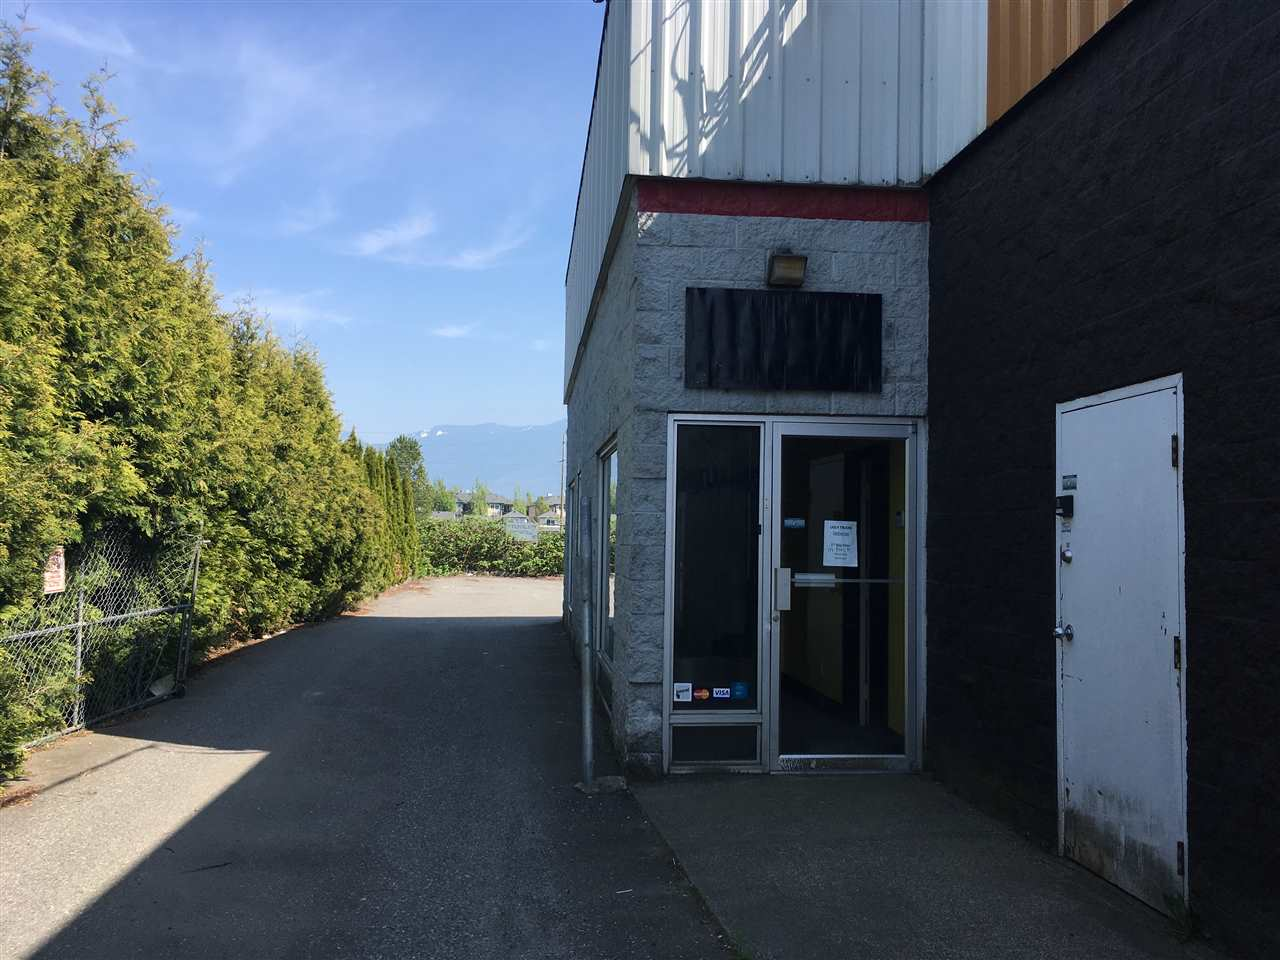 1500 square foot industrial space for lease including an office area as well as 2 large bays. CSM zoning permitted. Would be an excellent space for an automotive shop, small engine repair, automotive detailing, etc. Located on busy Yale Road with lots of parking available at the front and back. Call for more information!